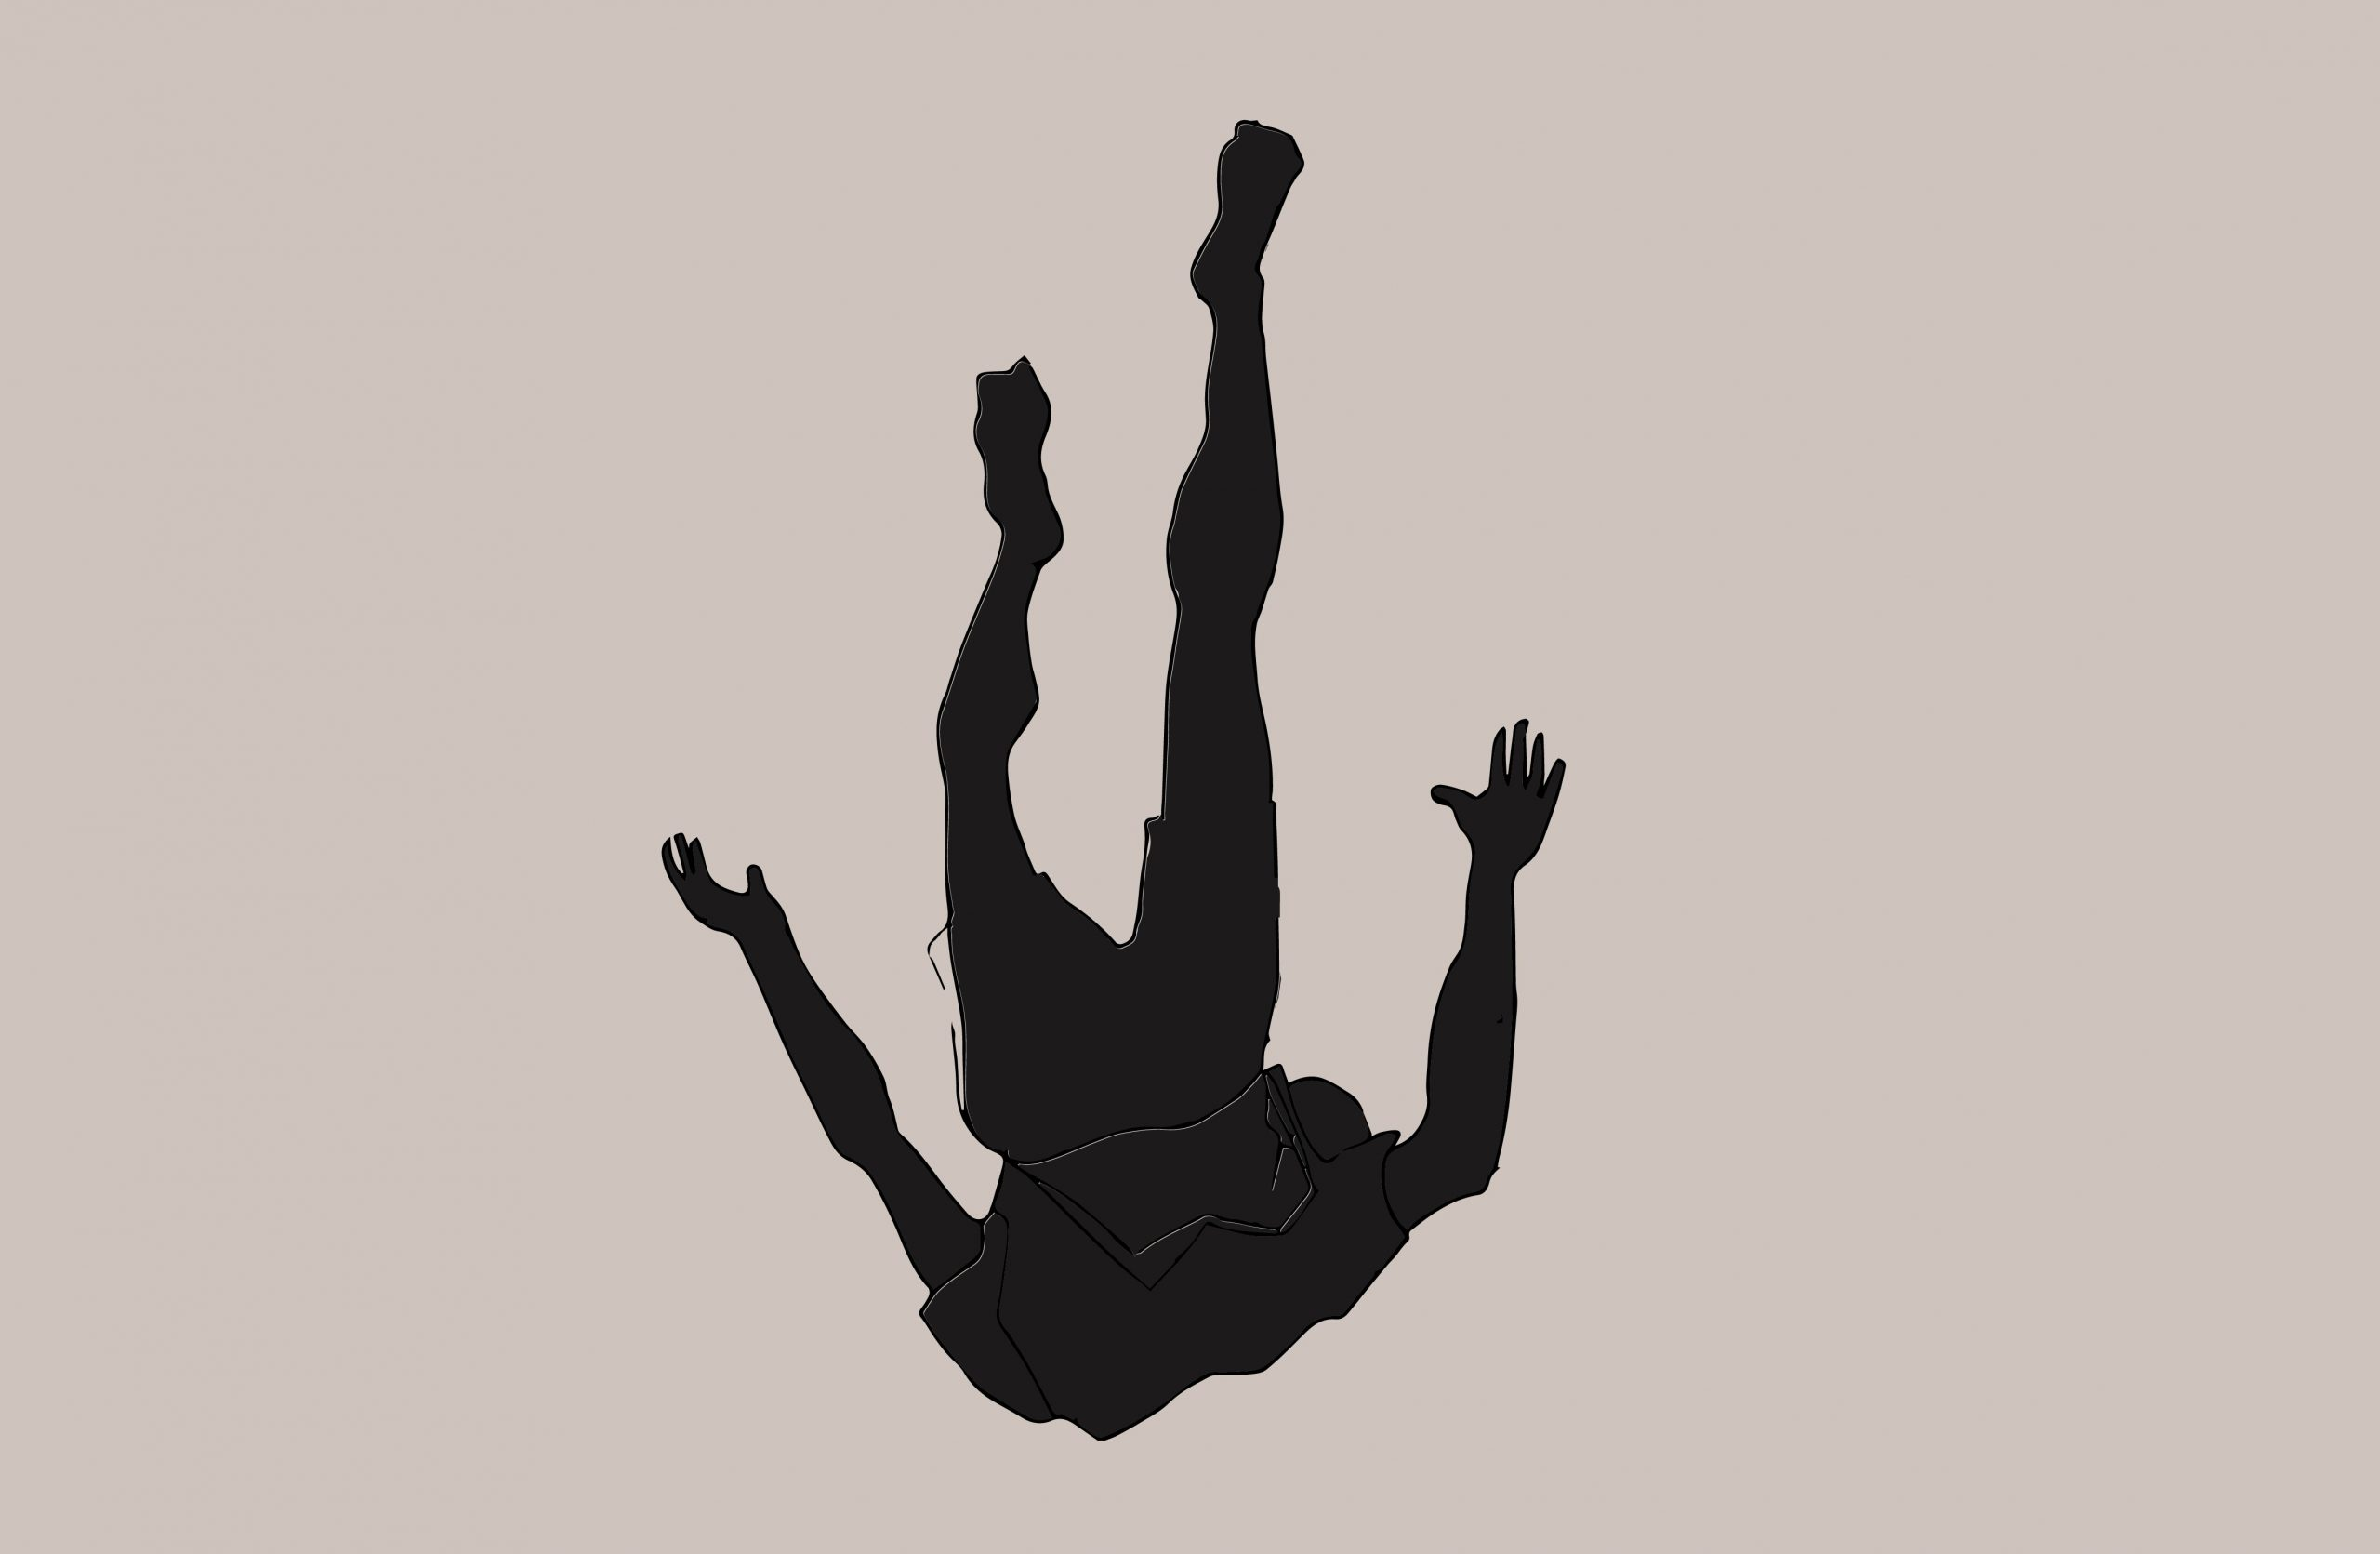 Illustration of person falling